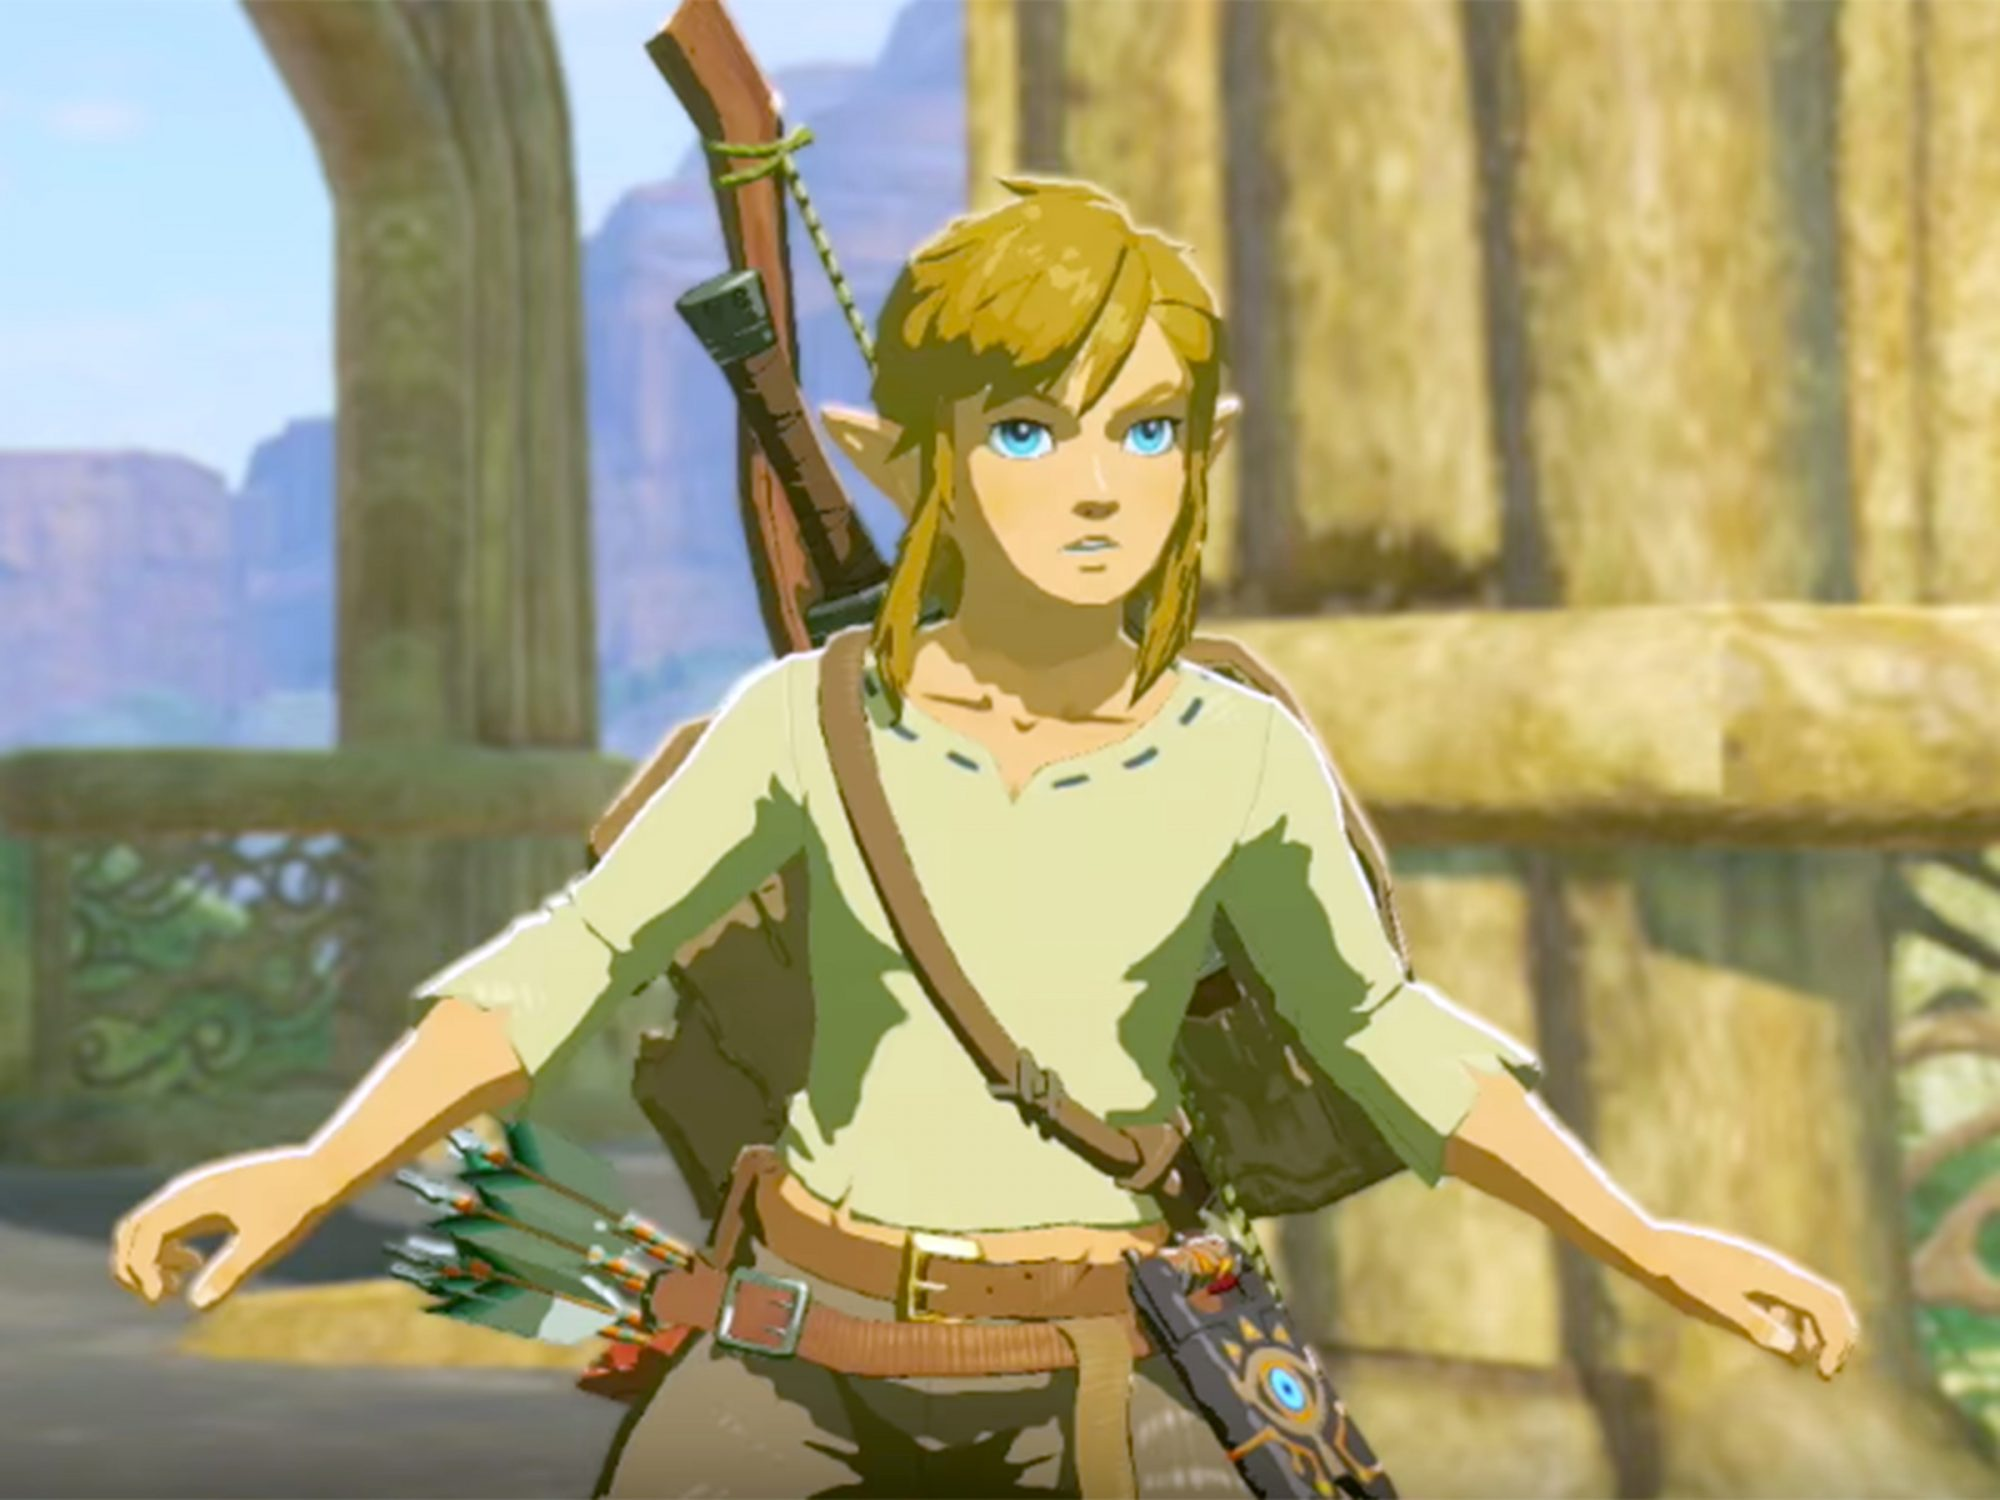 1. The Legend of Zelda: Breath of the Wild (Nintendo Switch, Wii U; TBD 2017)